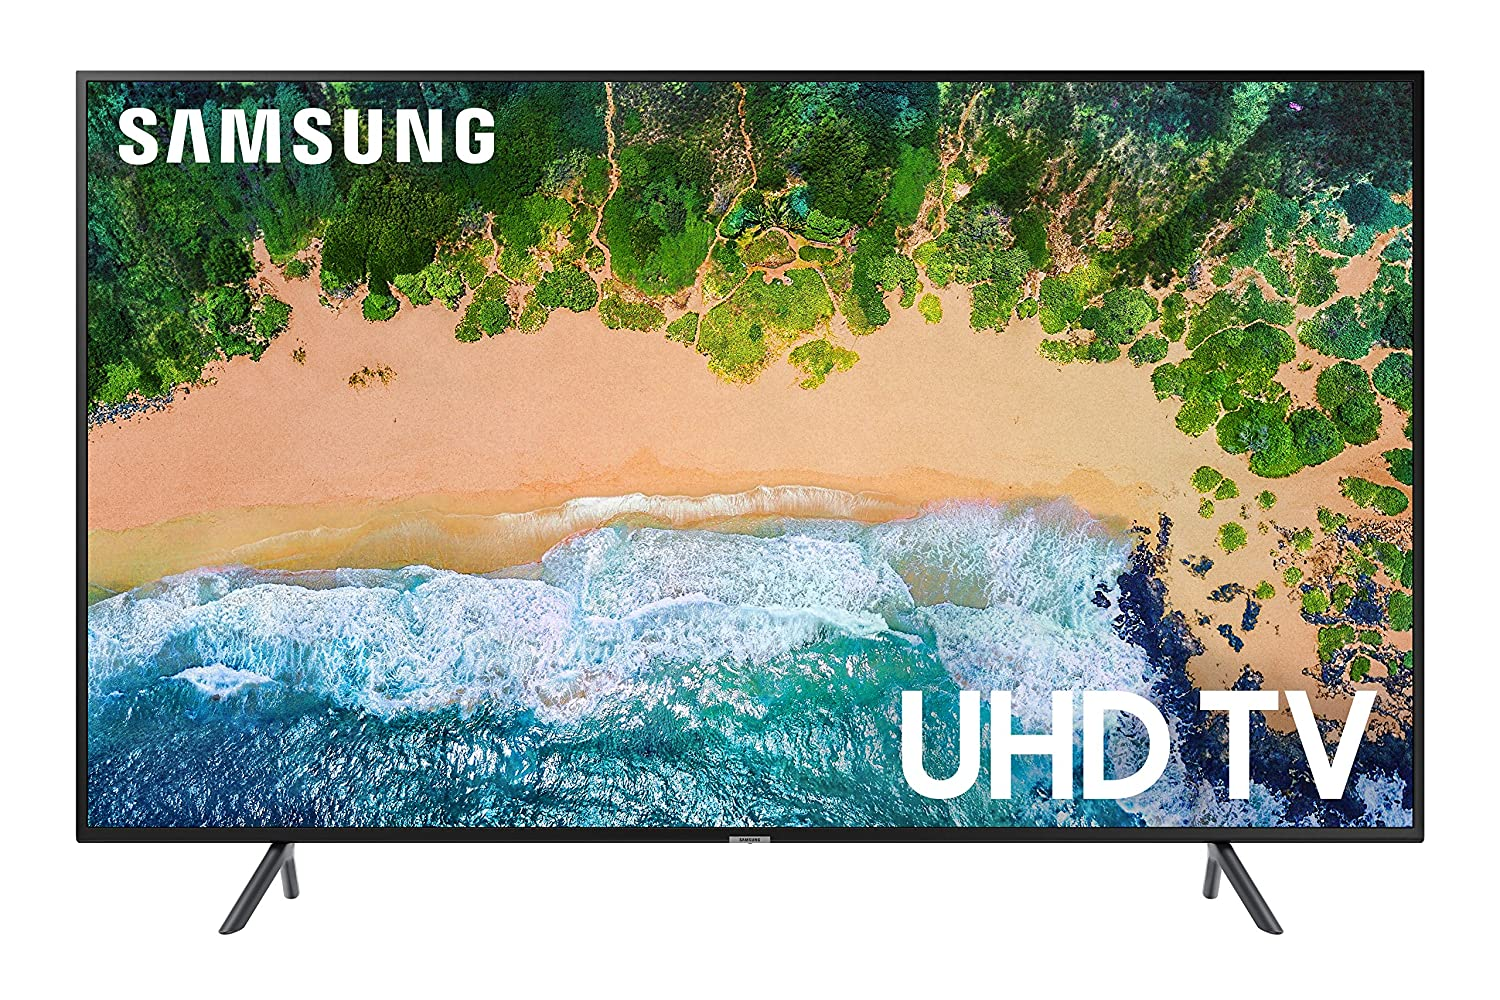 Samsung UN43NU7100FXZA Black Friday Deal 2020